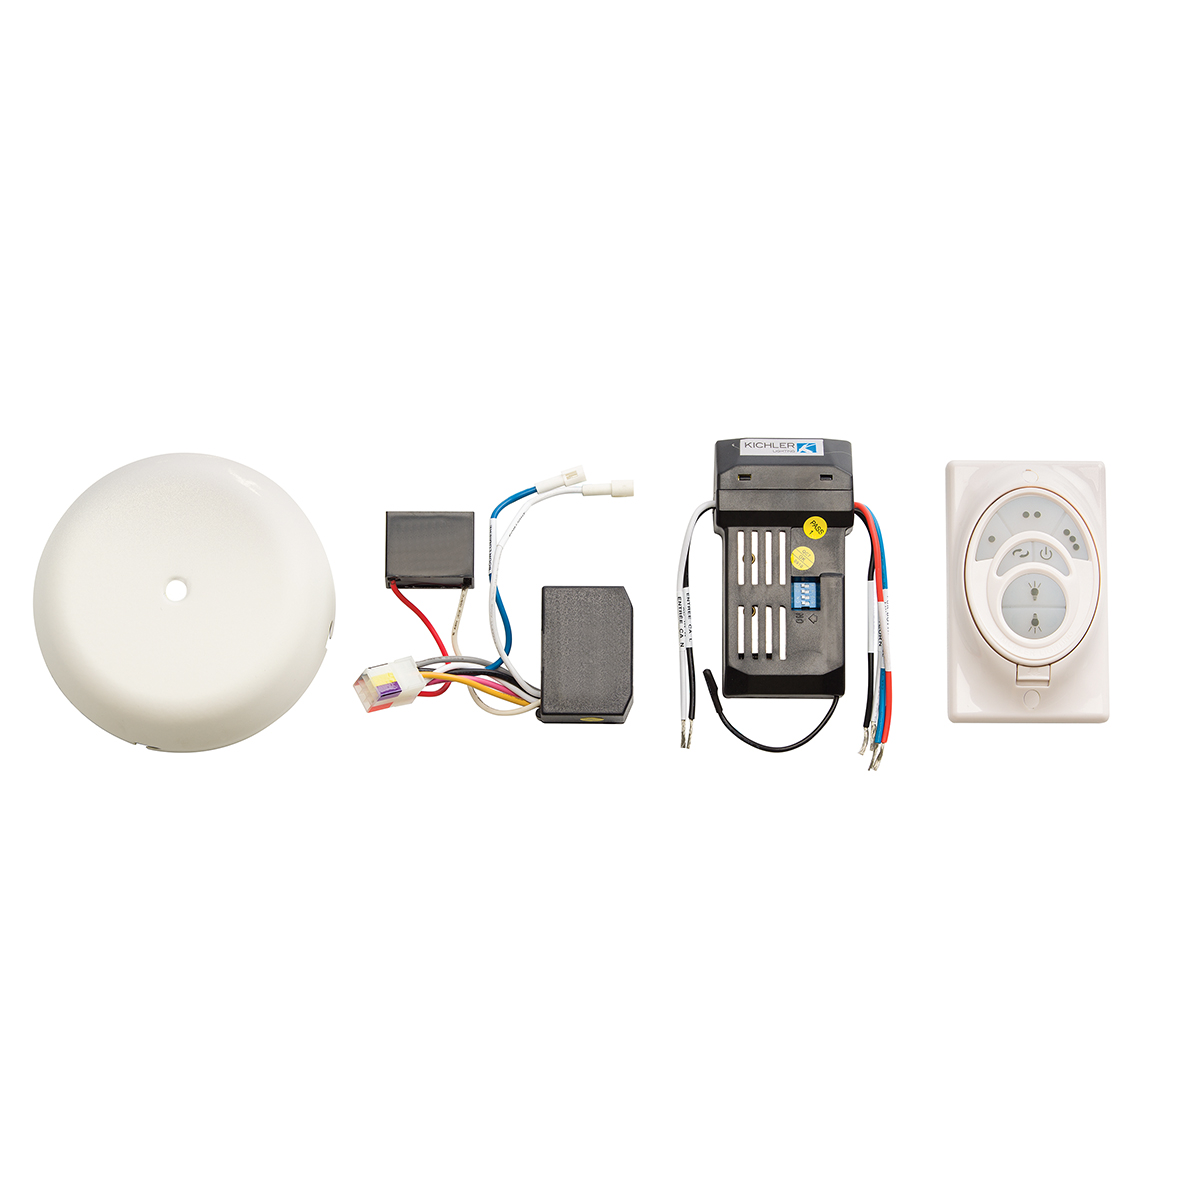 CoolTouch Control System R200 from the Accessory collection by Kichler 3R200MWH